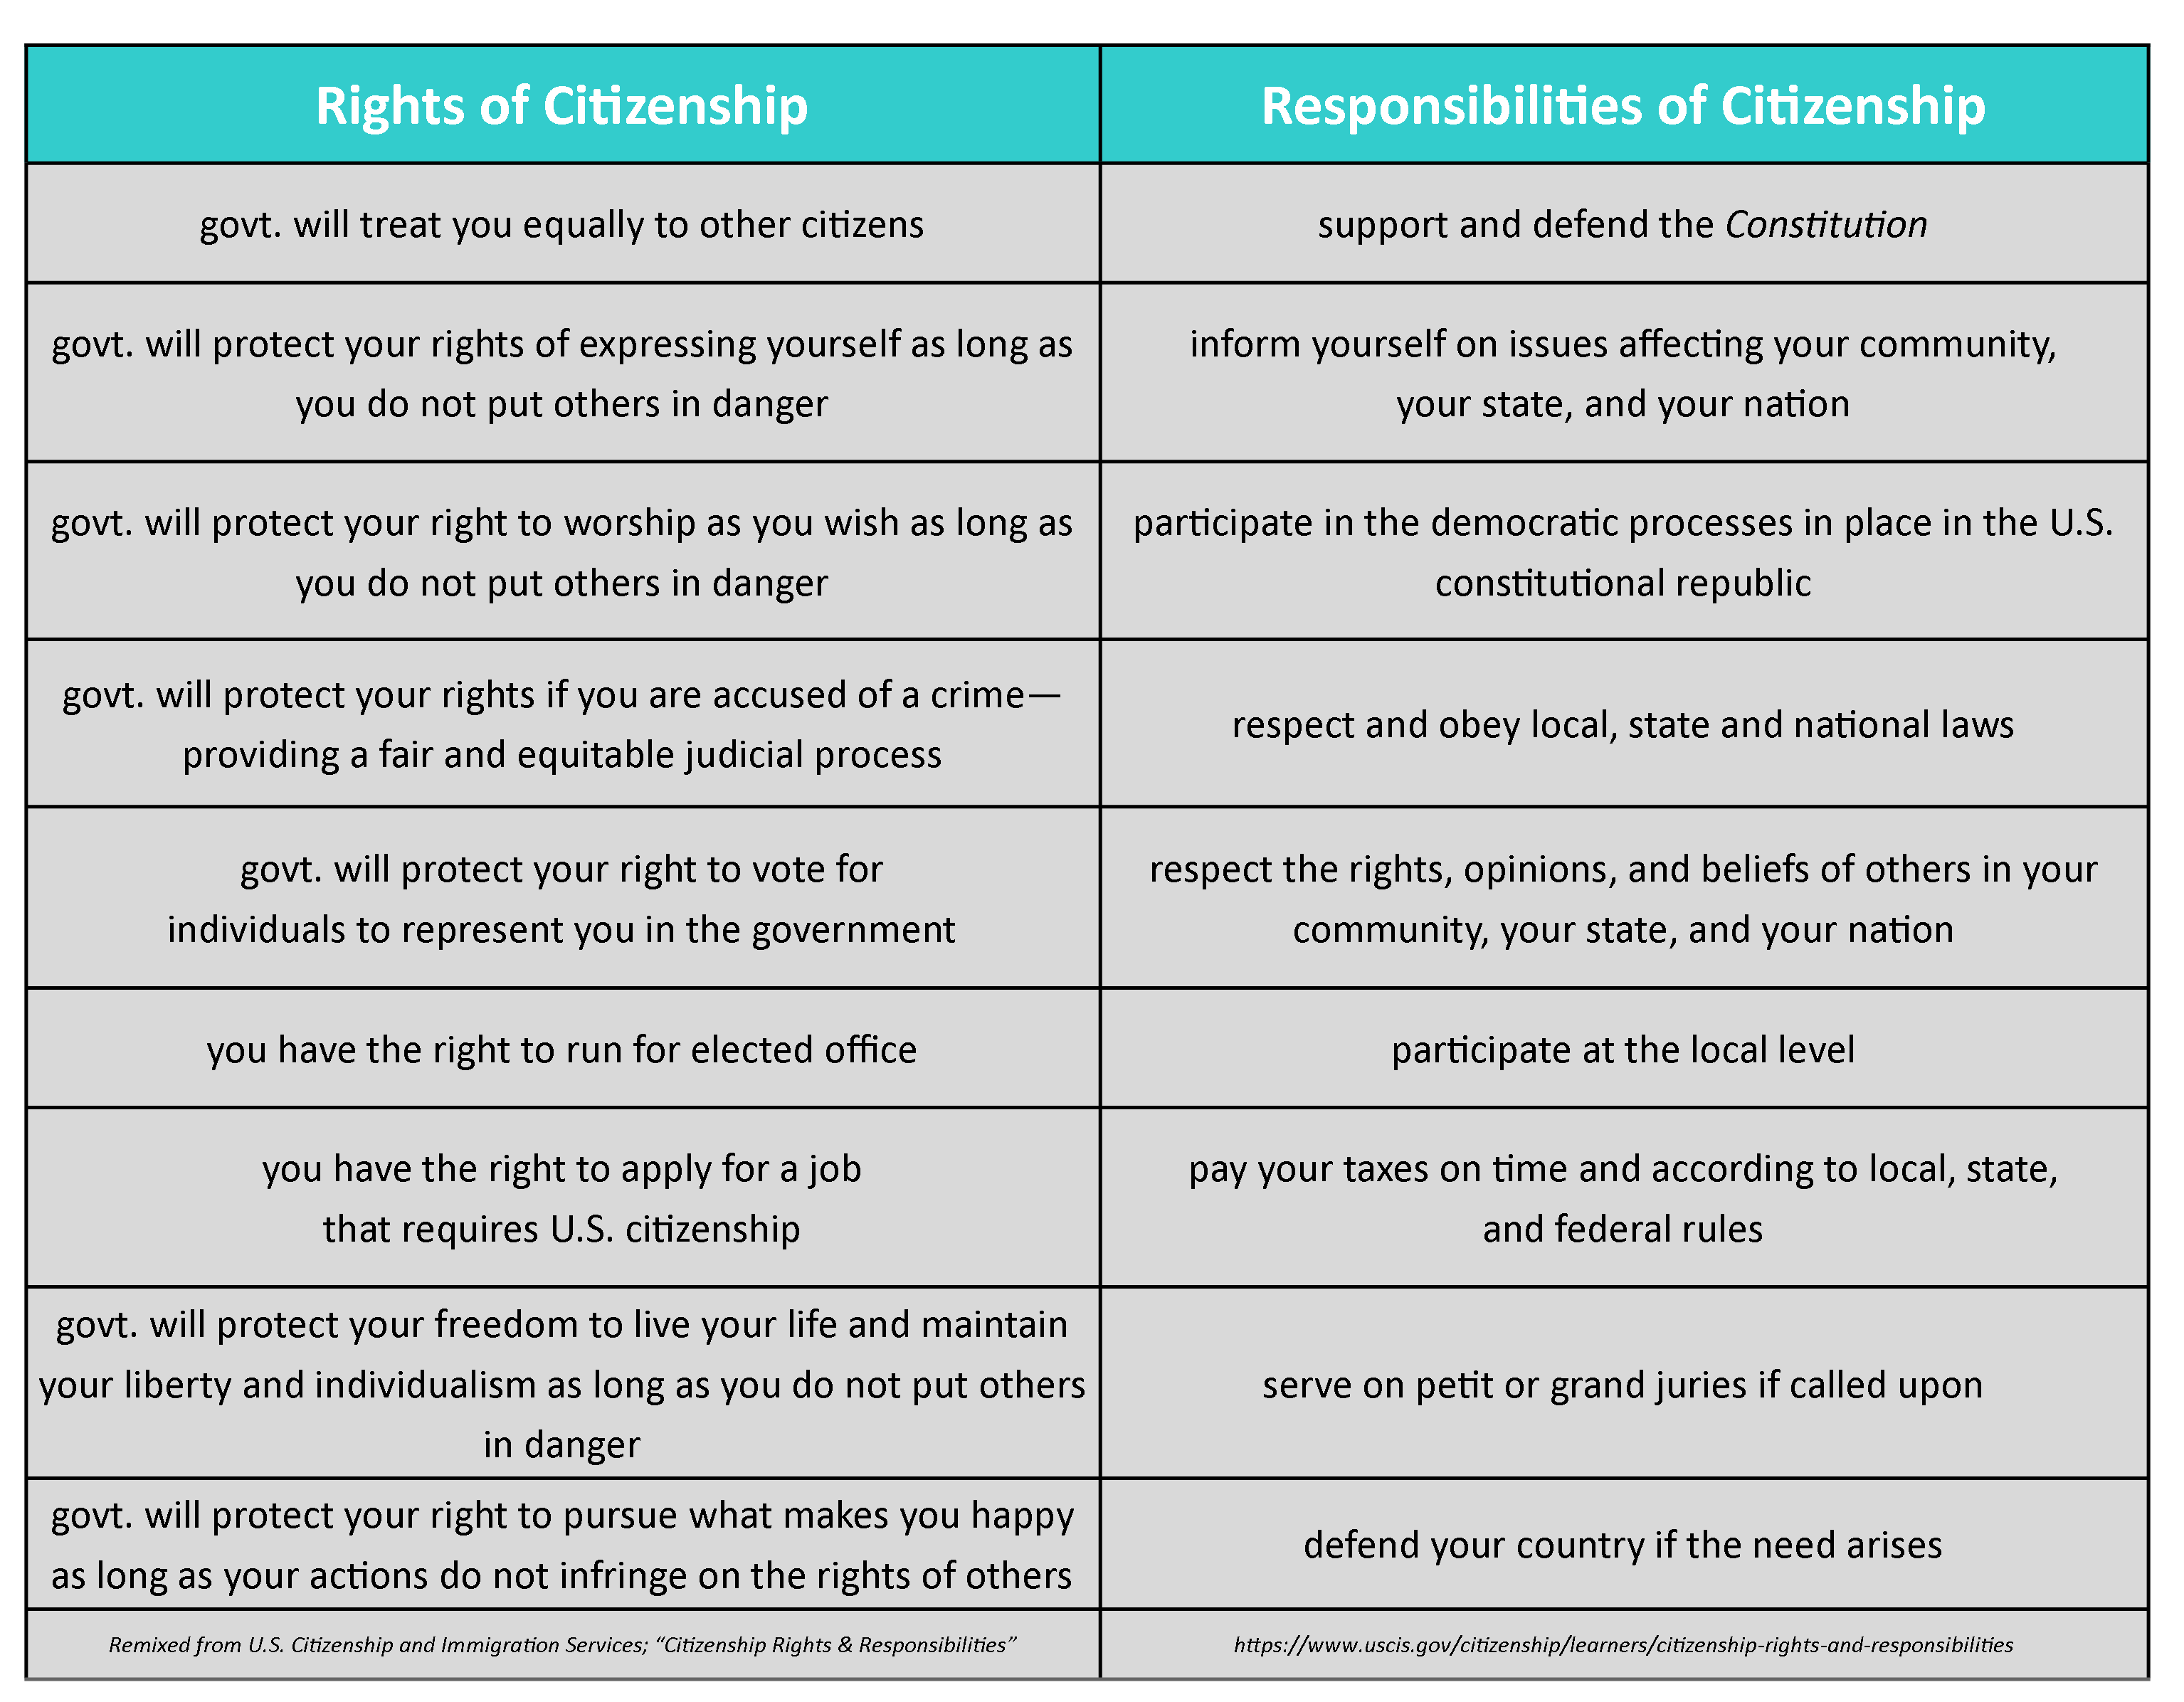 Chart listing rights of citizenship alongside responsibilities of citizenship.